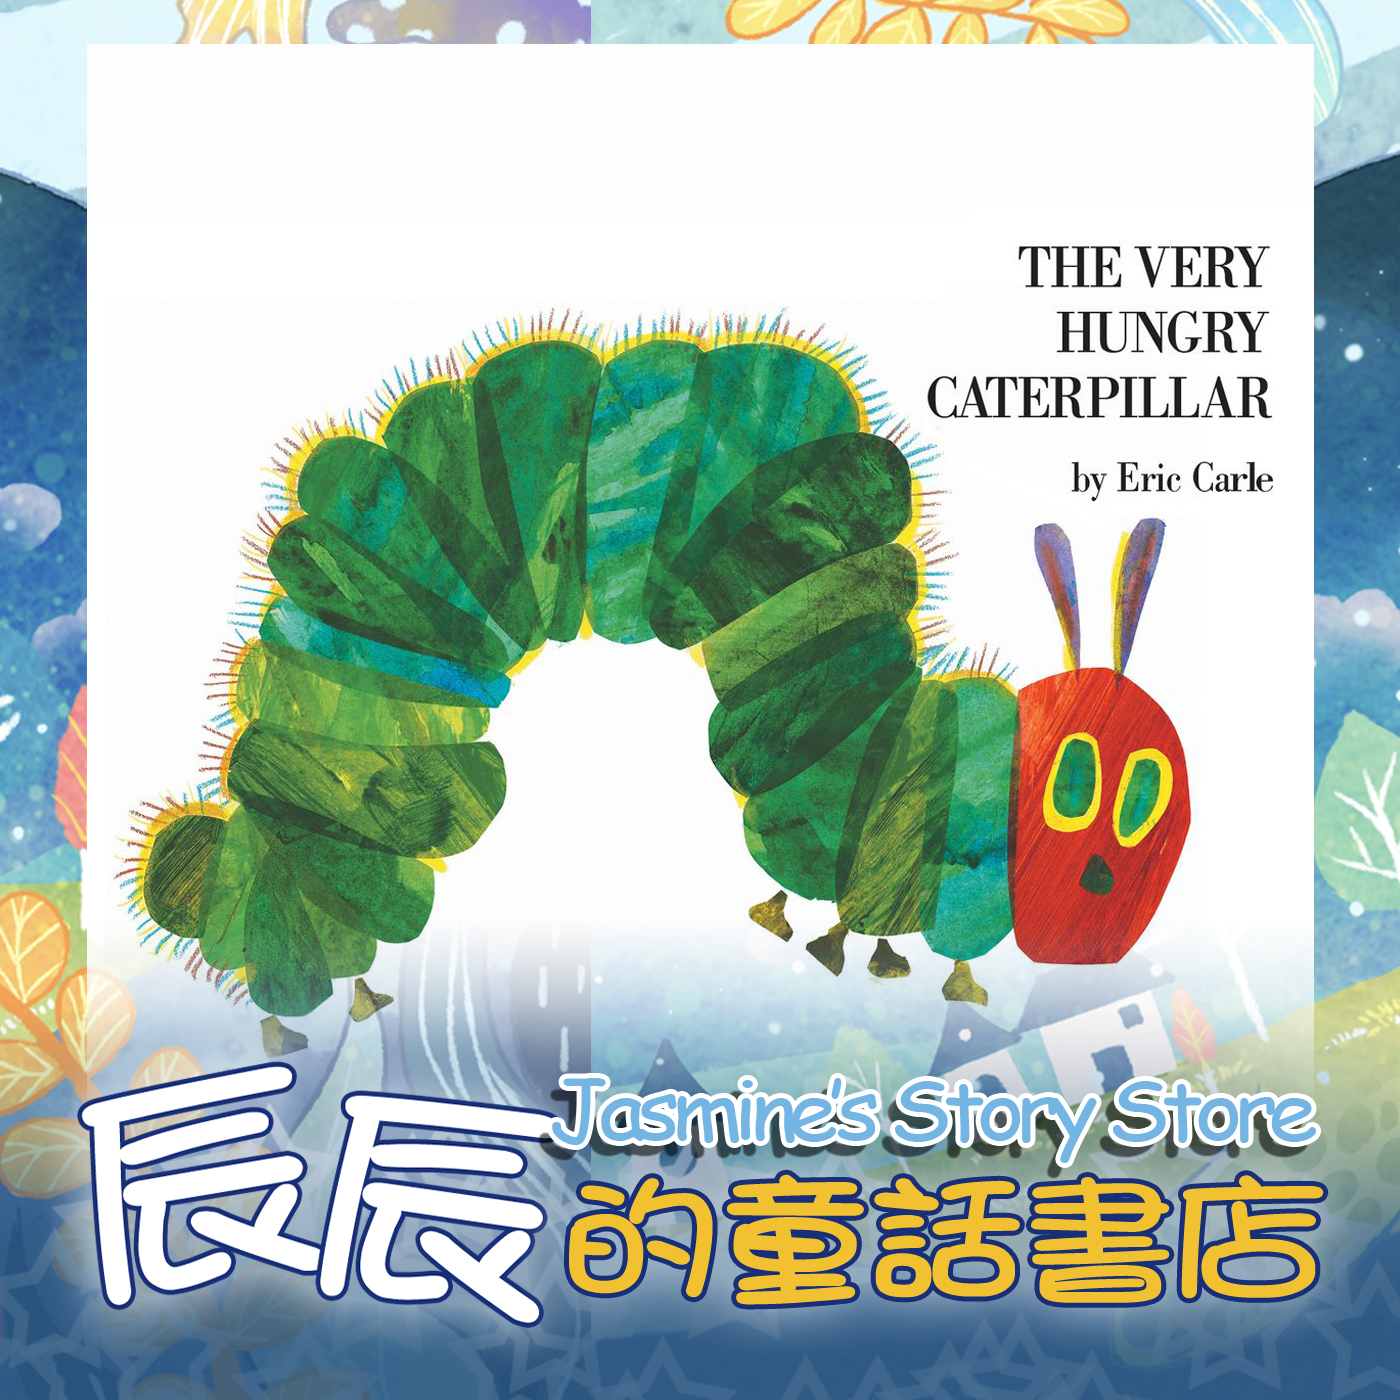 EP9-The very hungry caterpillar